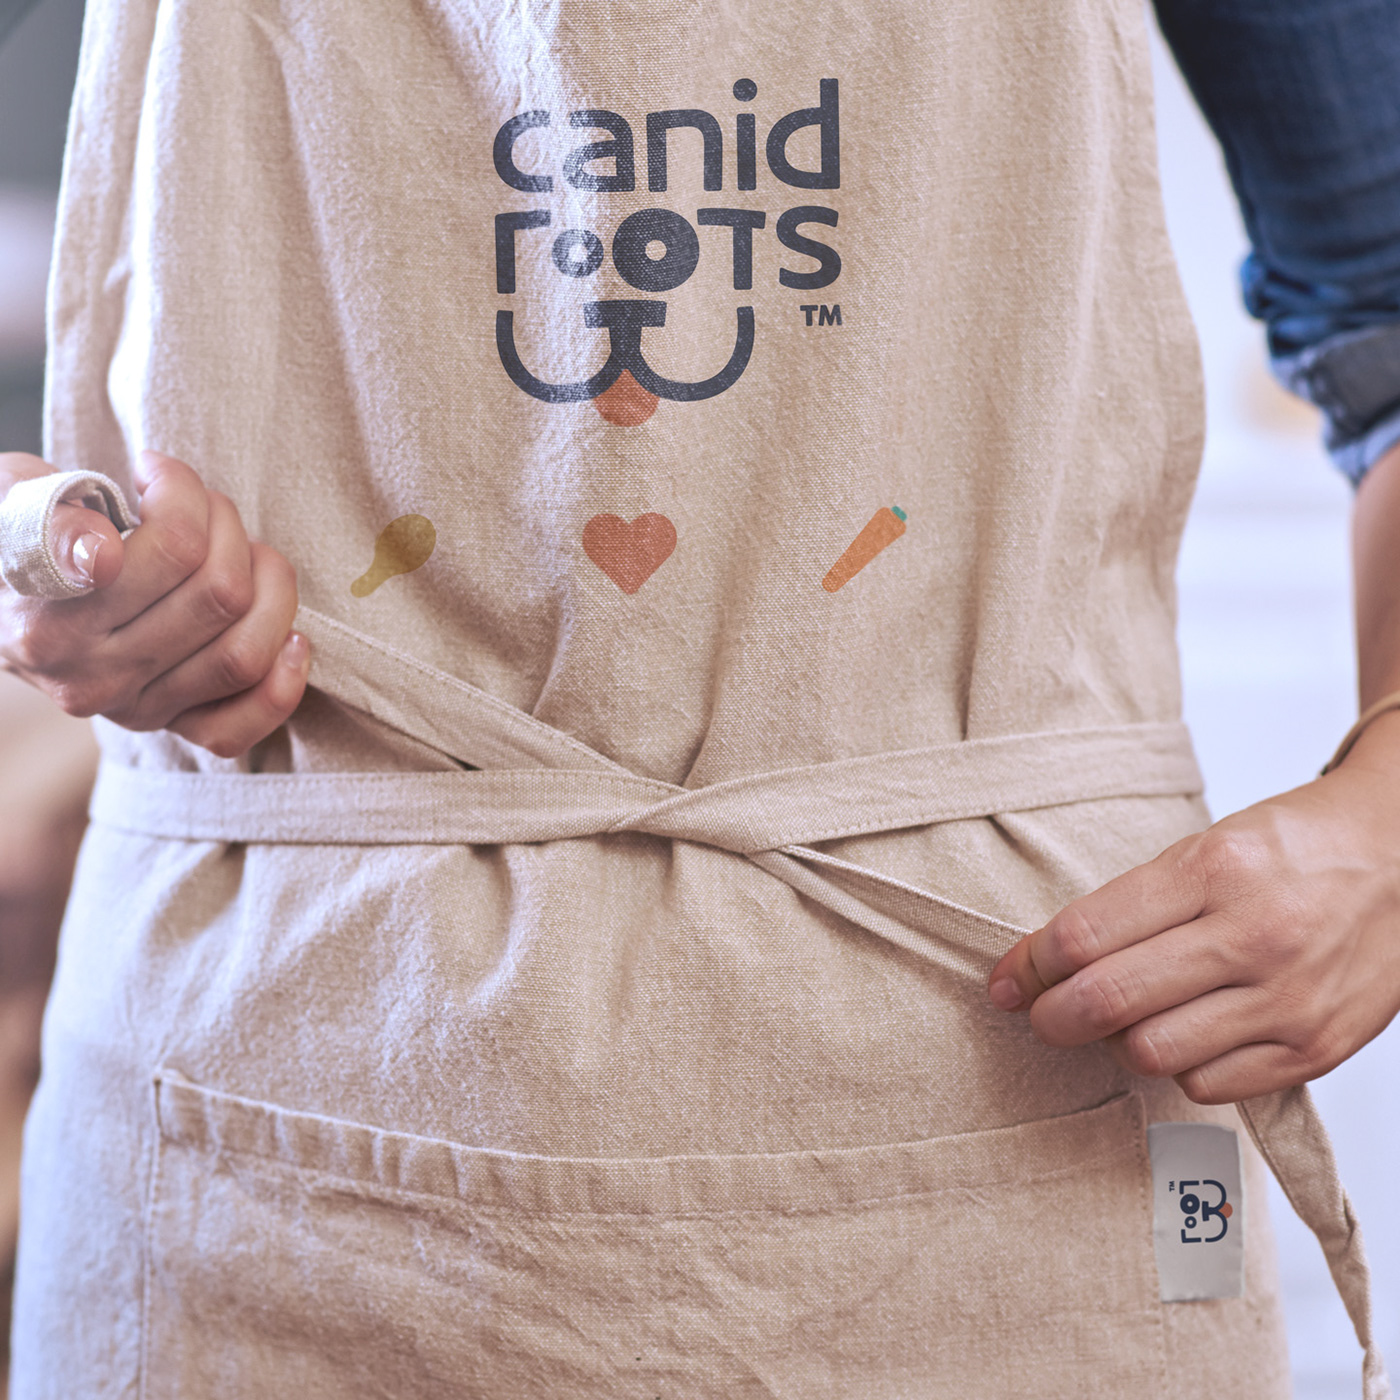 A cook is seen tying his apron. The Canid Roots logo is printed on it. He appears to be in a kitchen